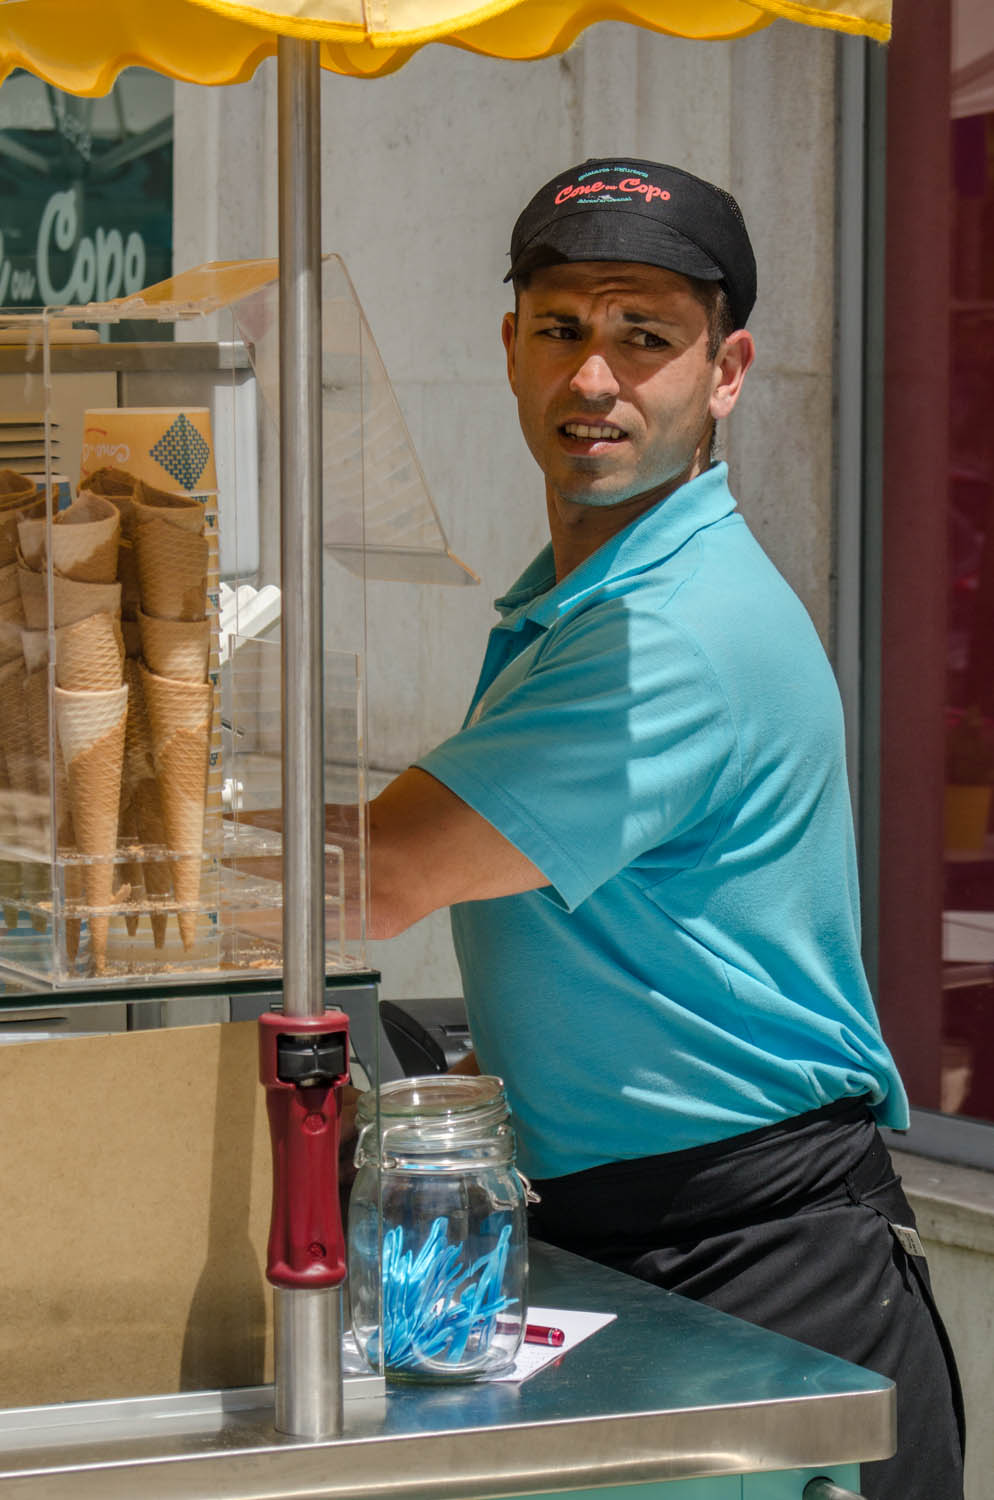 Last summer during a photo tour in Lisbon, I came across this young man selling ice-cream. Including part of the environment adds the bright colours and helps telling the story. Had I gotten too close and all I would get would be the photo of a young man in a funny hat.